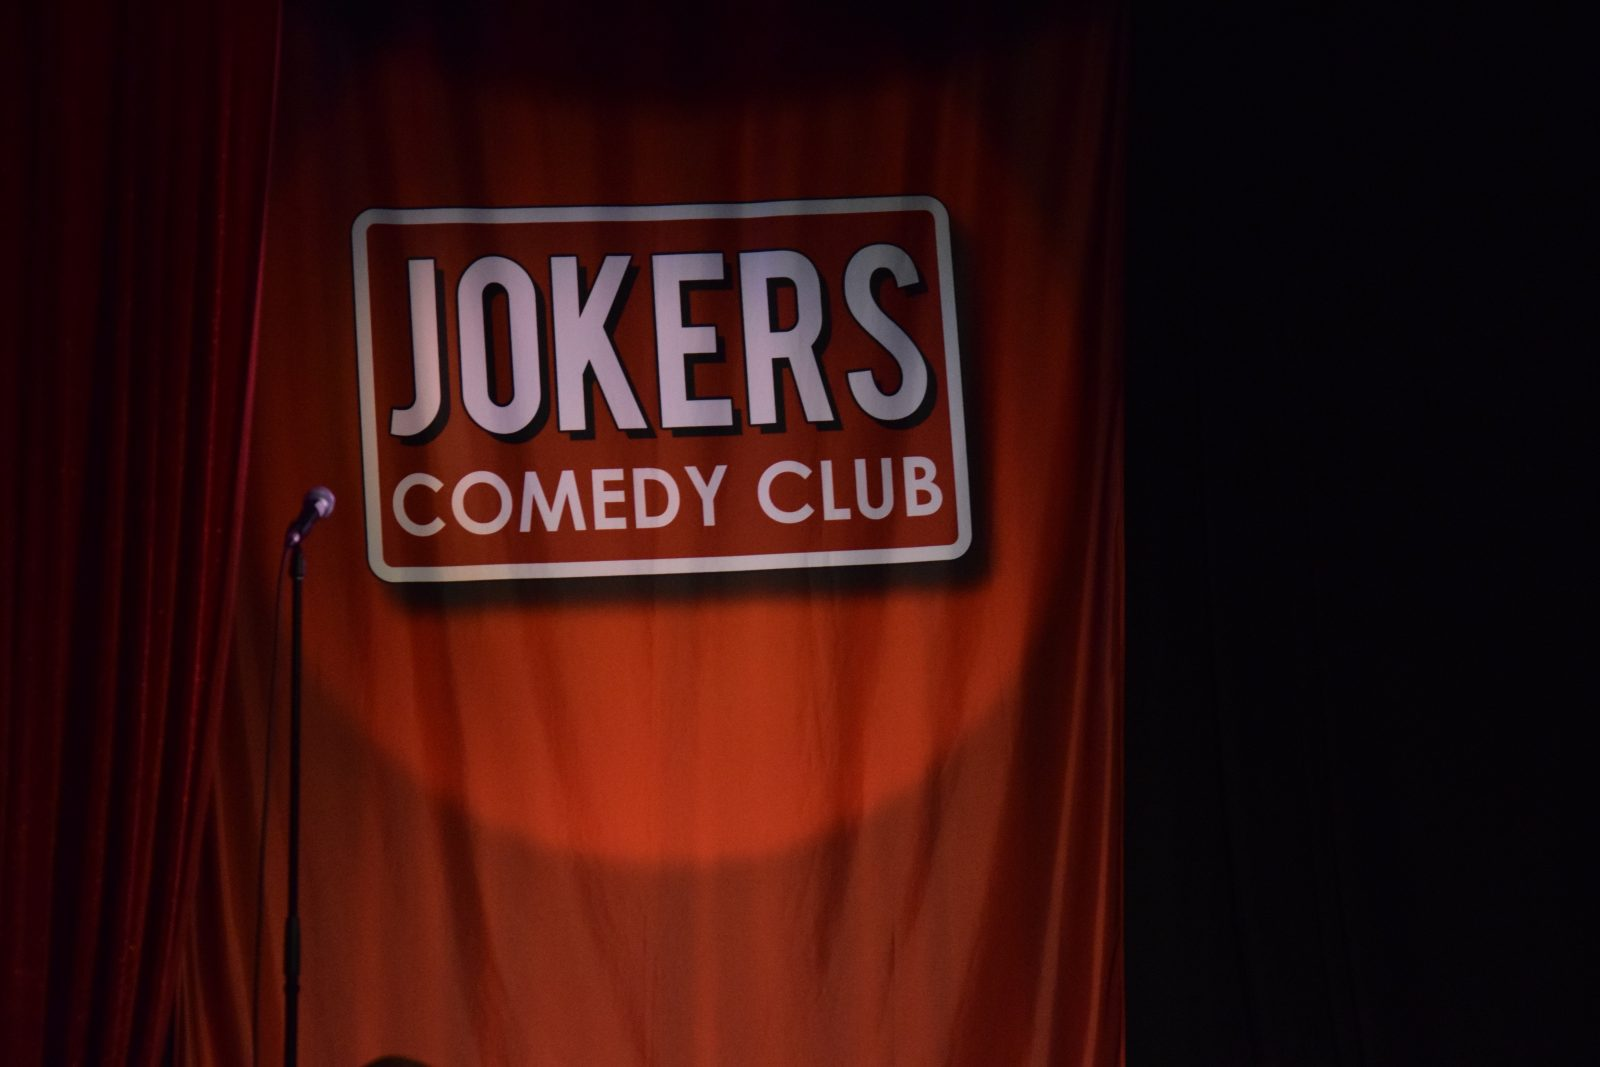 Jokers Comedy Club stage